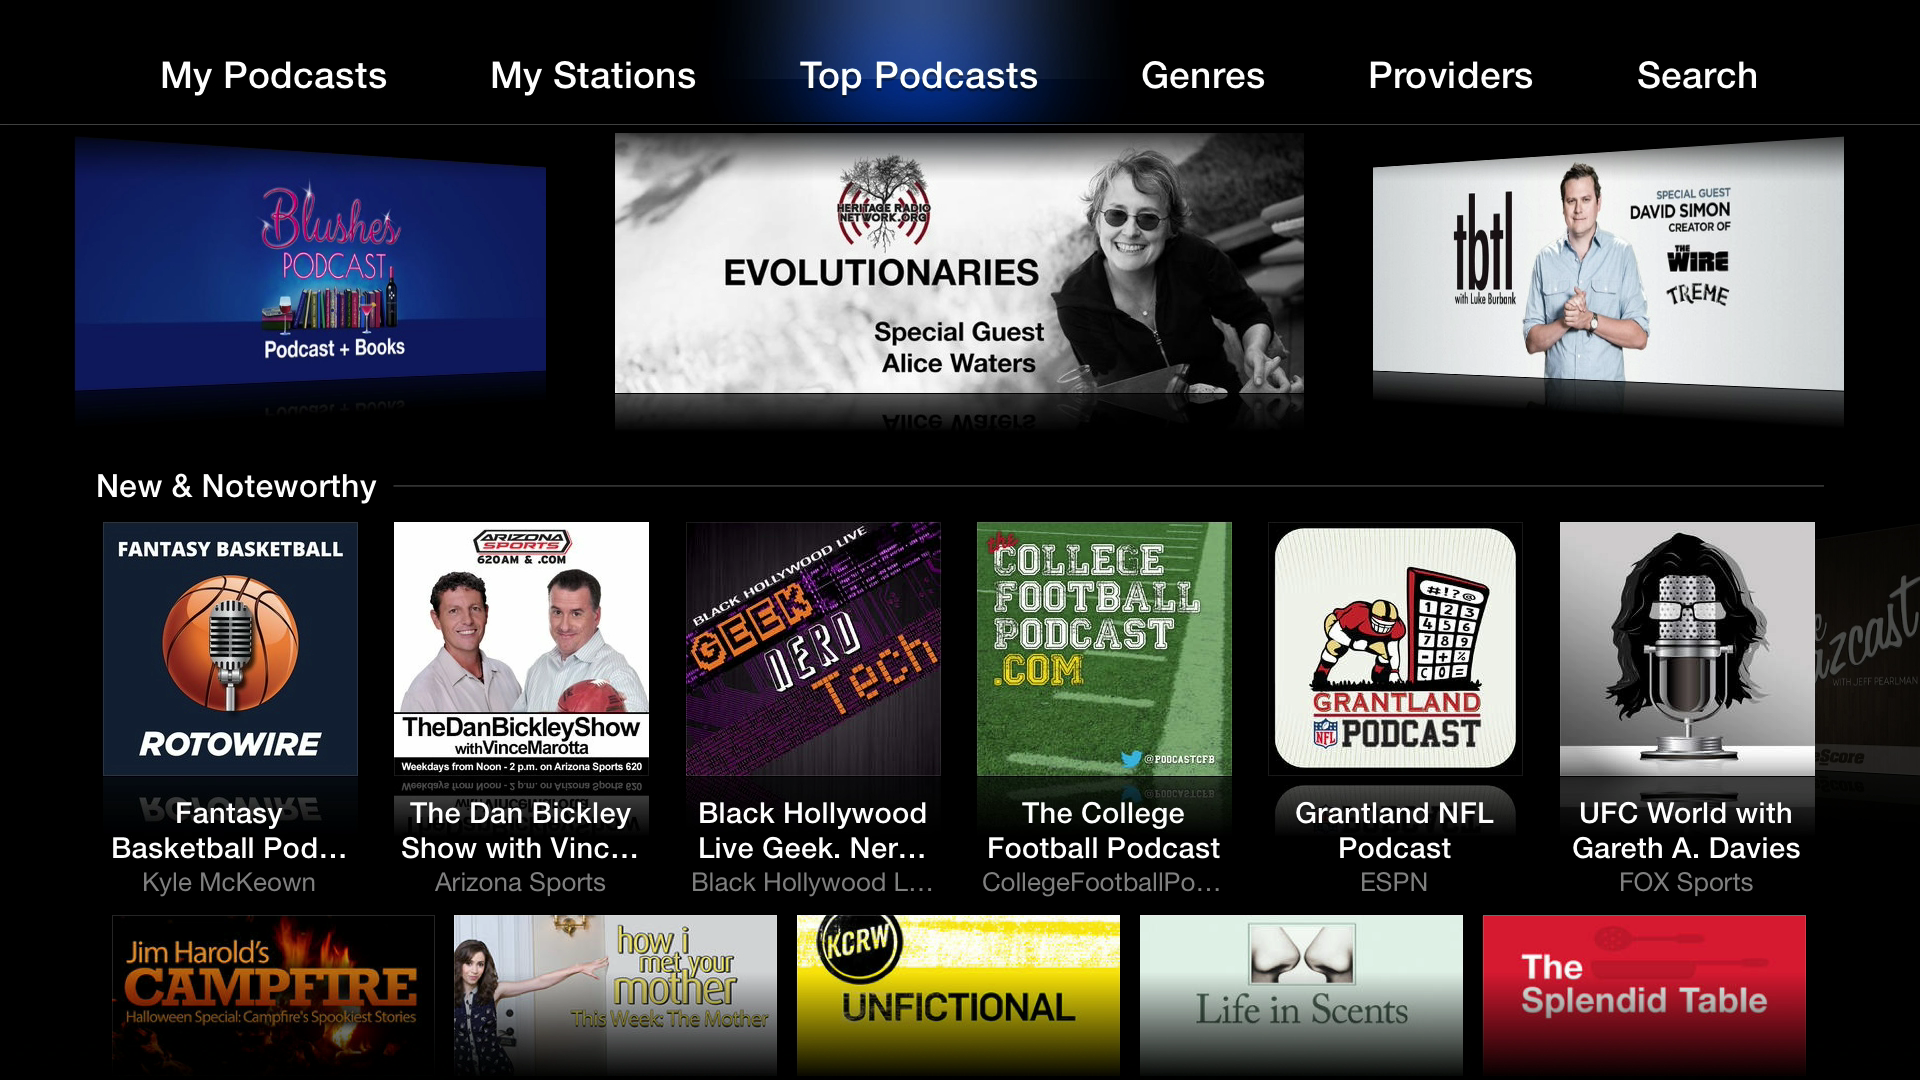 Figure 22: The Podcasts app gives you a variety of podcasts to listen to, watch, and subscribe to.